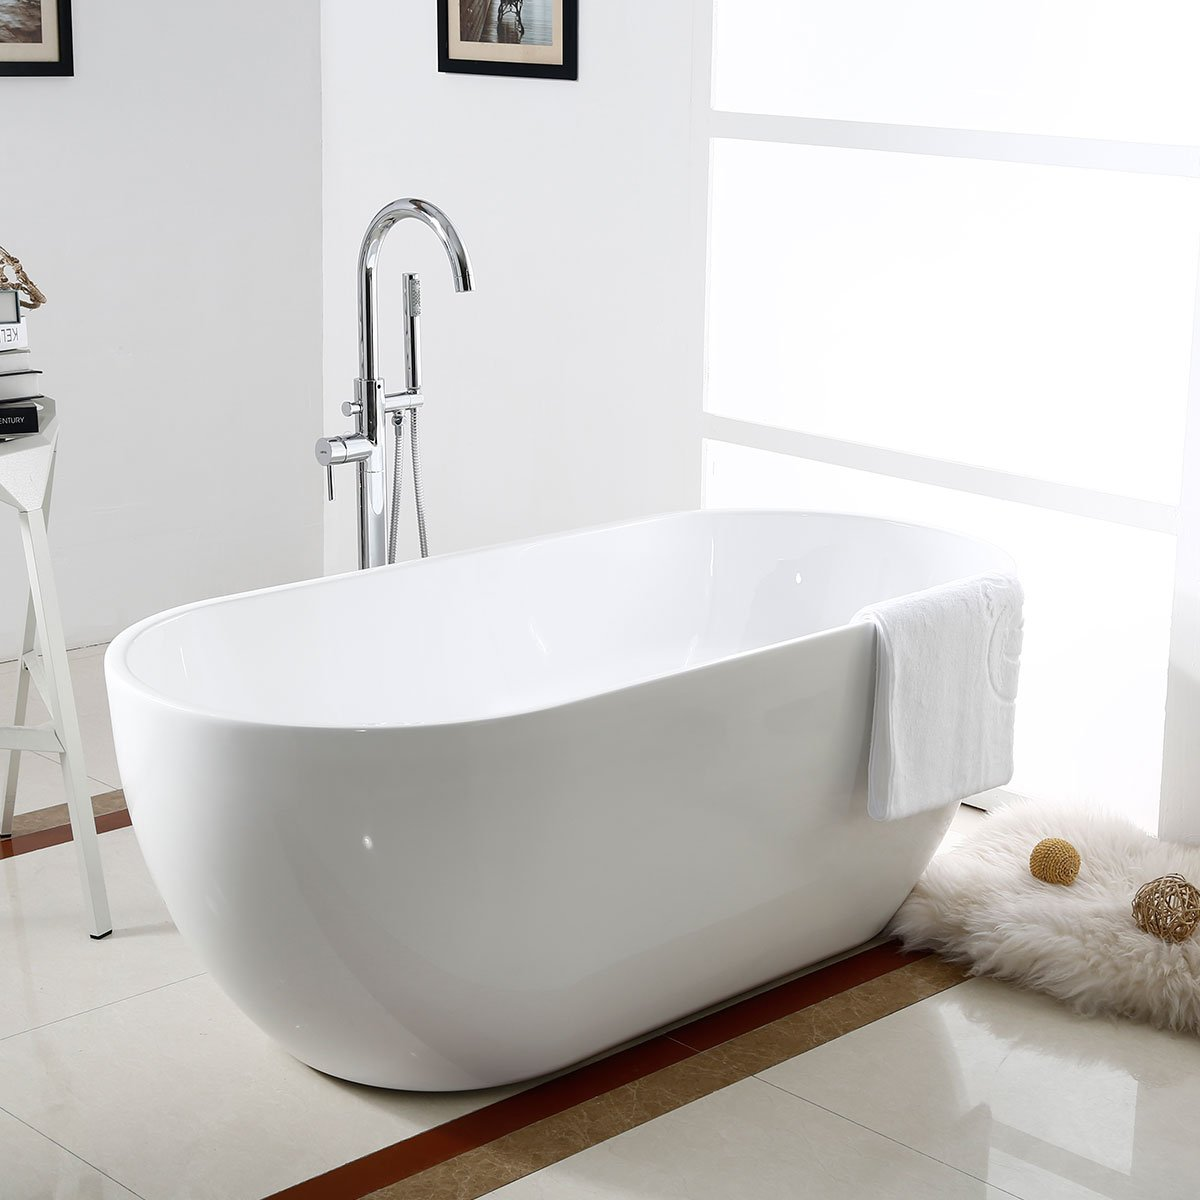 BHBL 60 In Seamless White Acrylic Freestanding Bathtub (C AT 11572)      Amazon.com